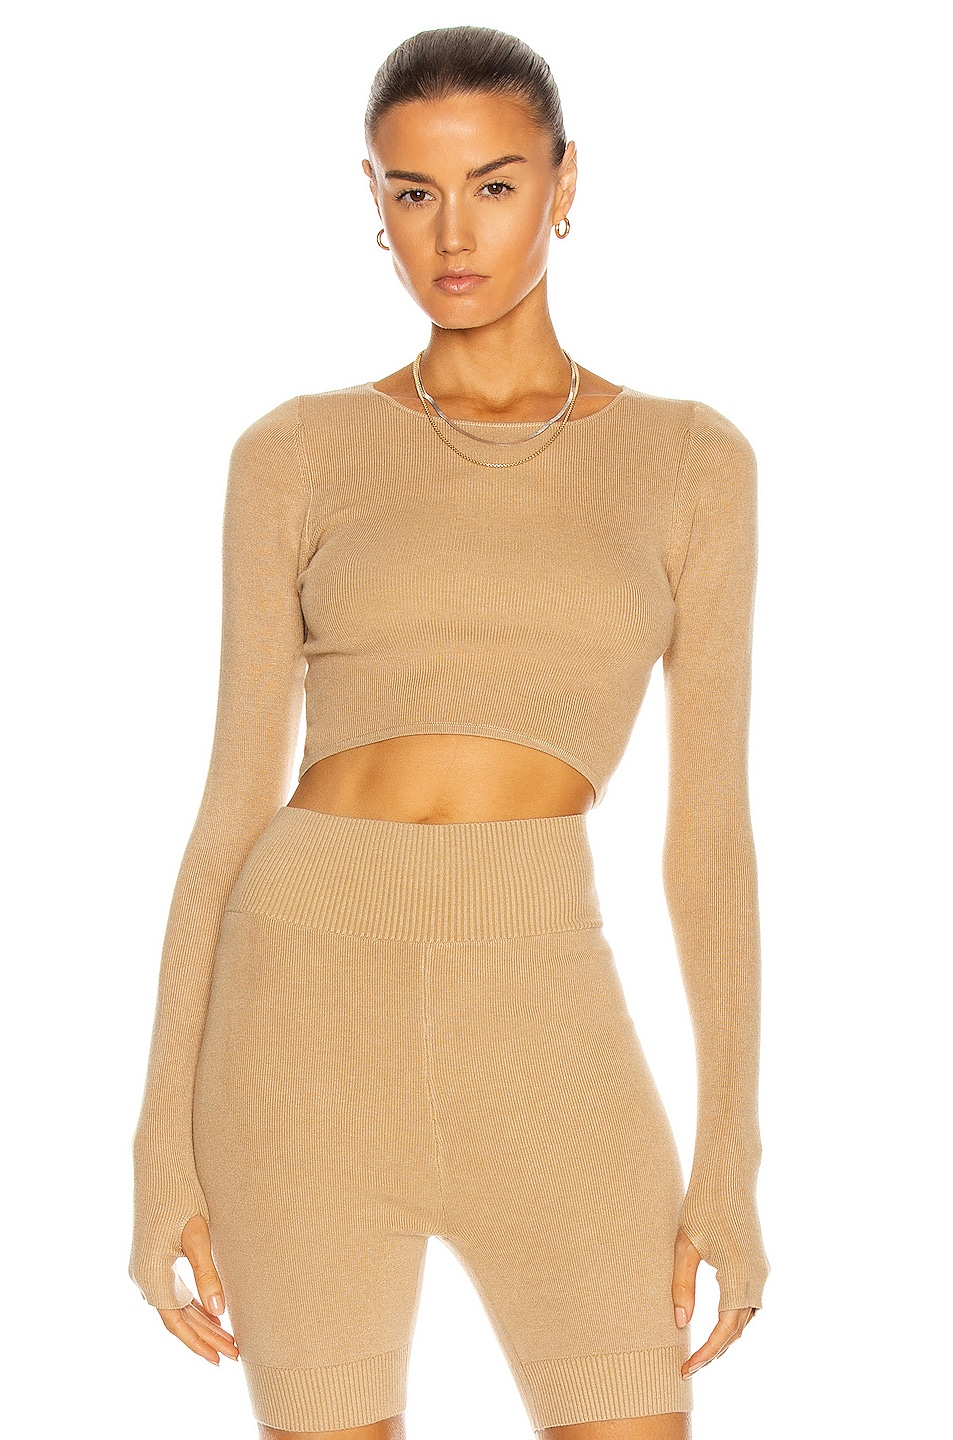 Image 1 of Atoir The Noah Knit Top in Sepia